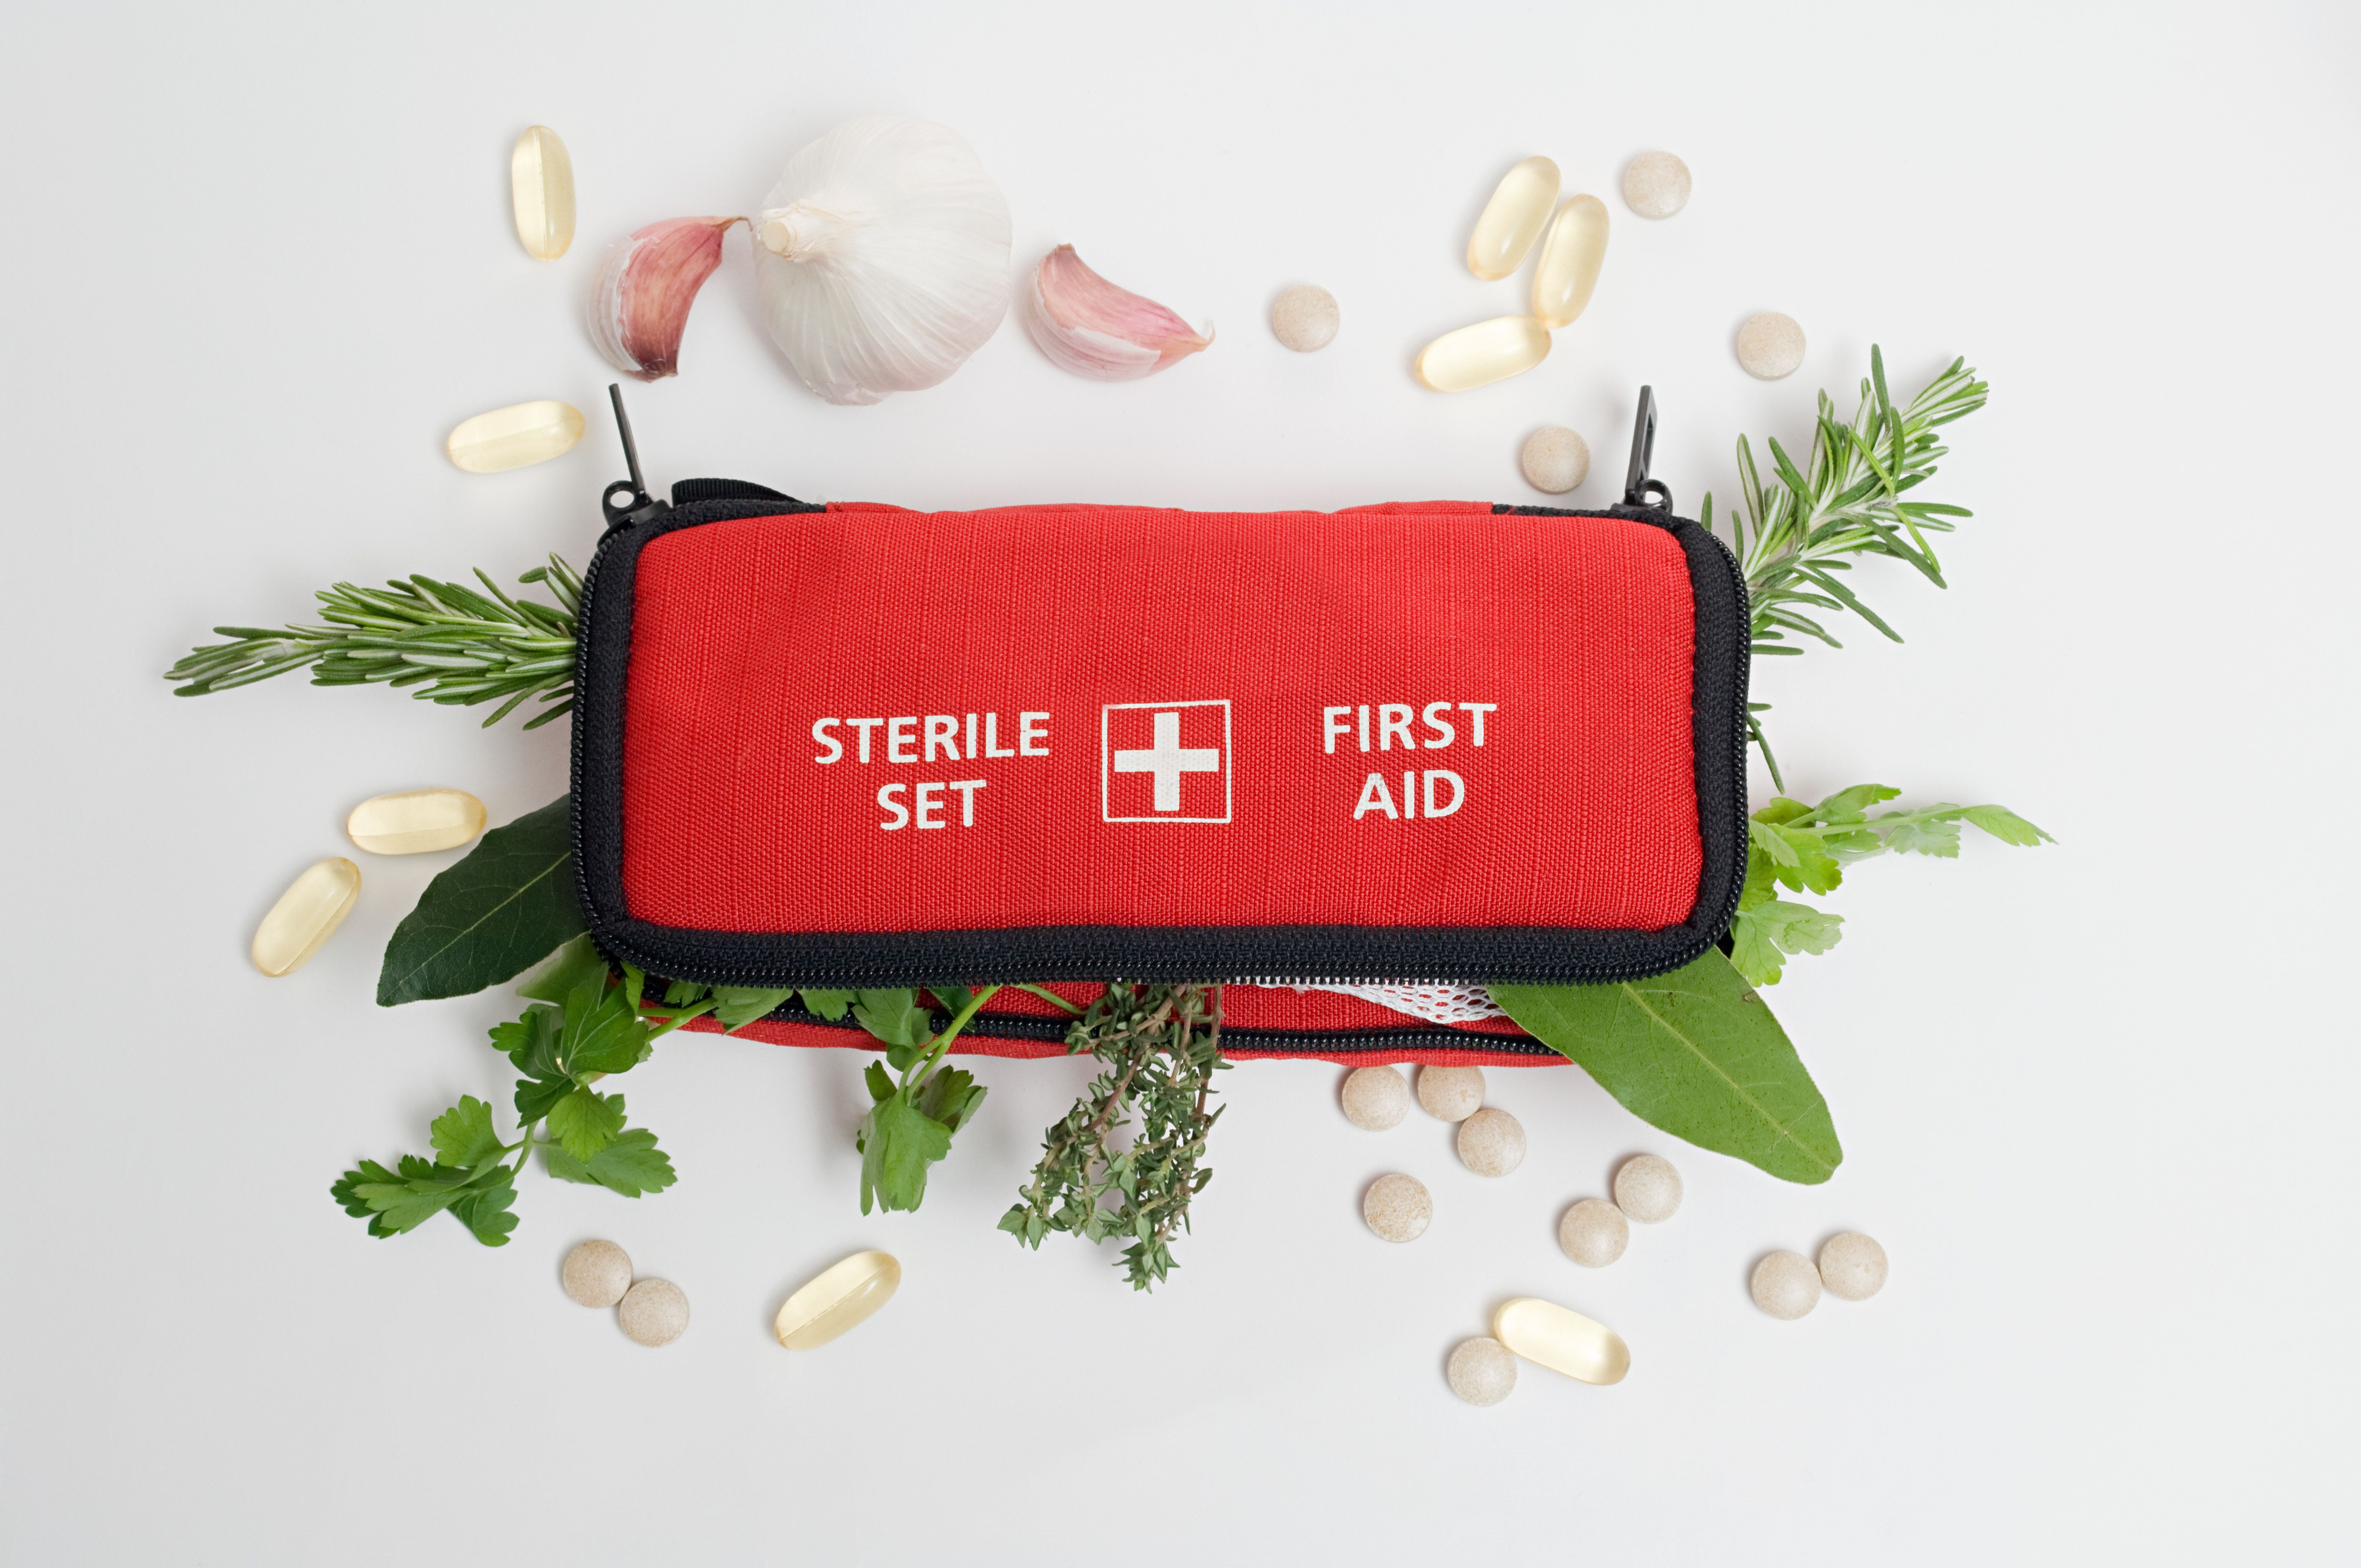 First Aid Kit Checklist: 24 Supplies You Should Have on Hand